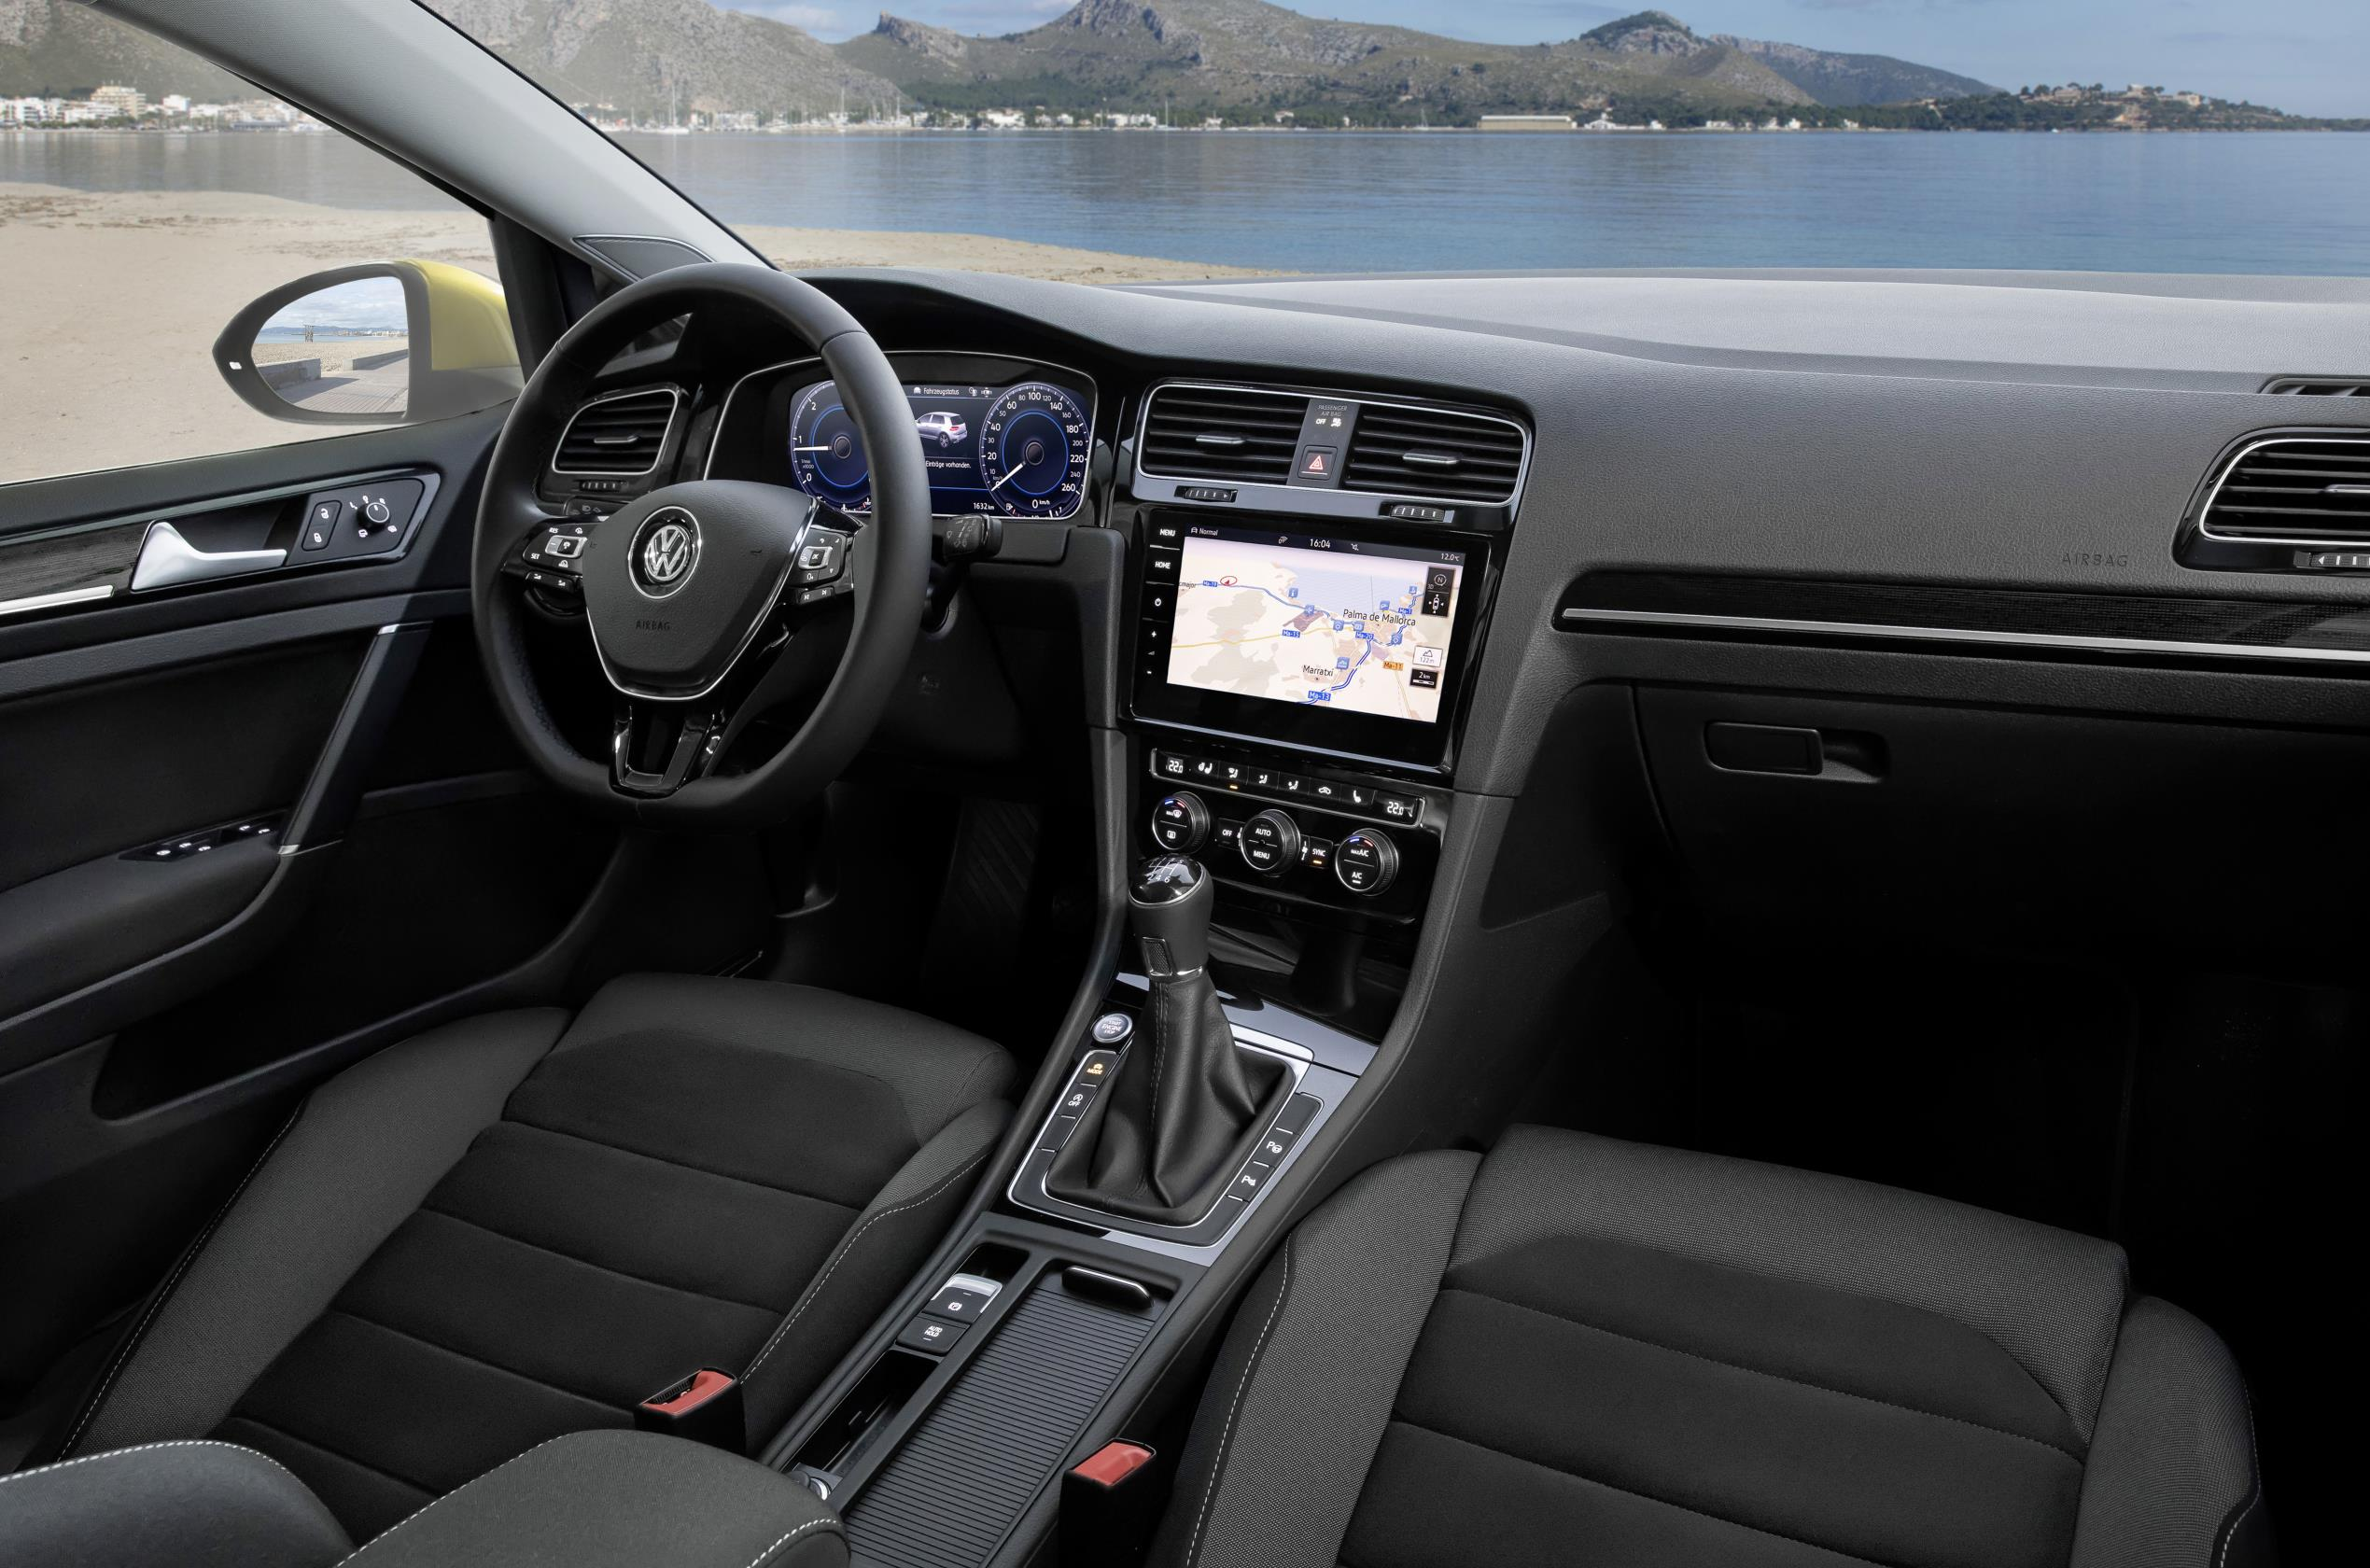 volkswagen une voile new of sa devoile leasing success fabuleux luxury qui story nouvelle enfin d polo the